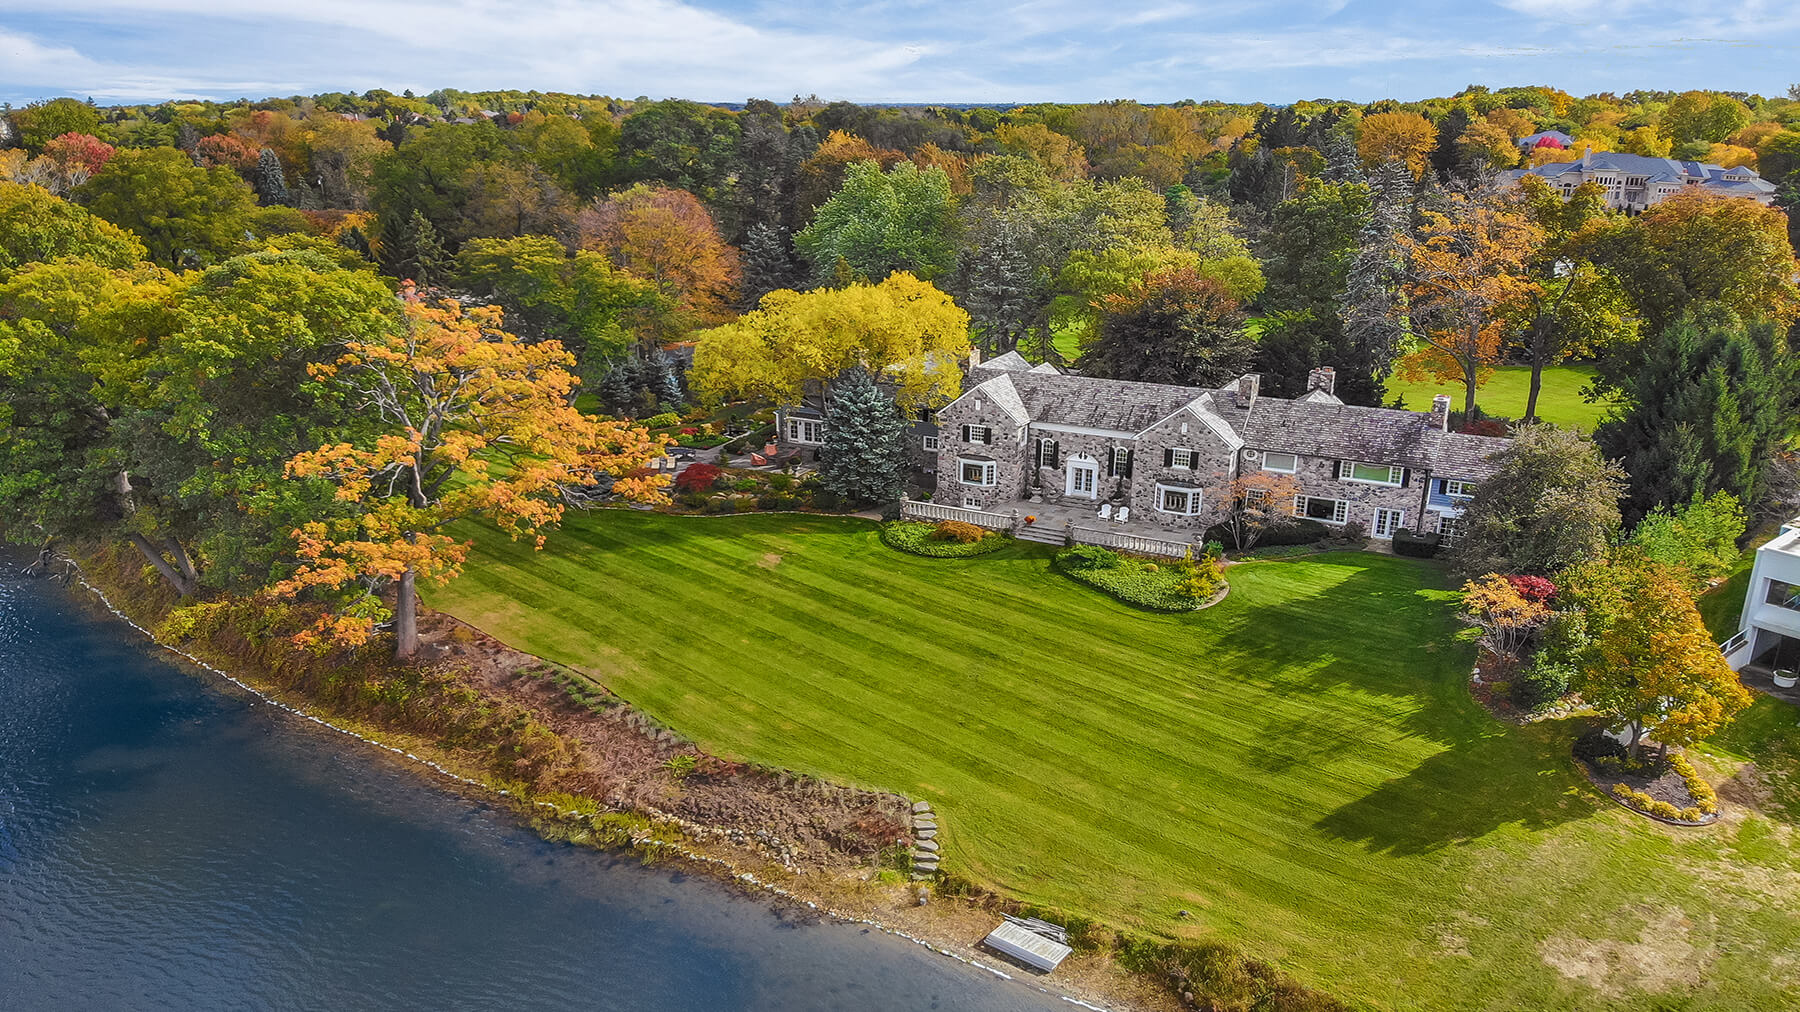 1500 Long Lake Road - Bloomfield Hills, Michigan - $3,499,000 USD